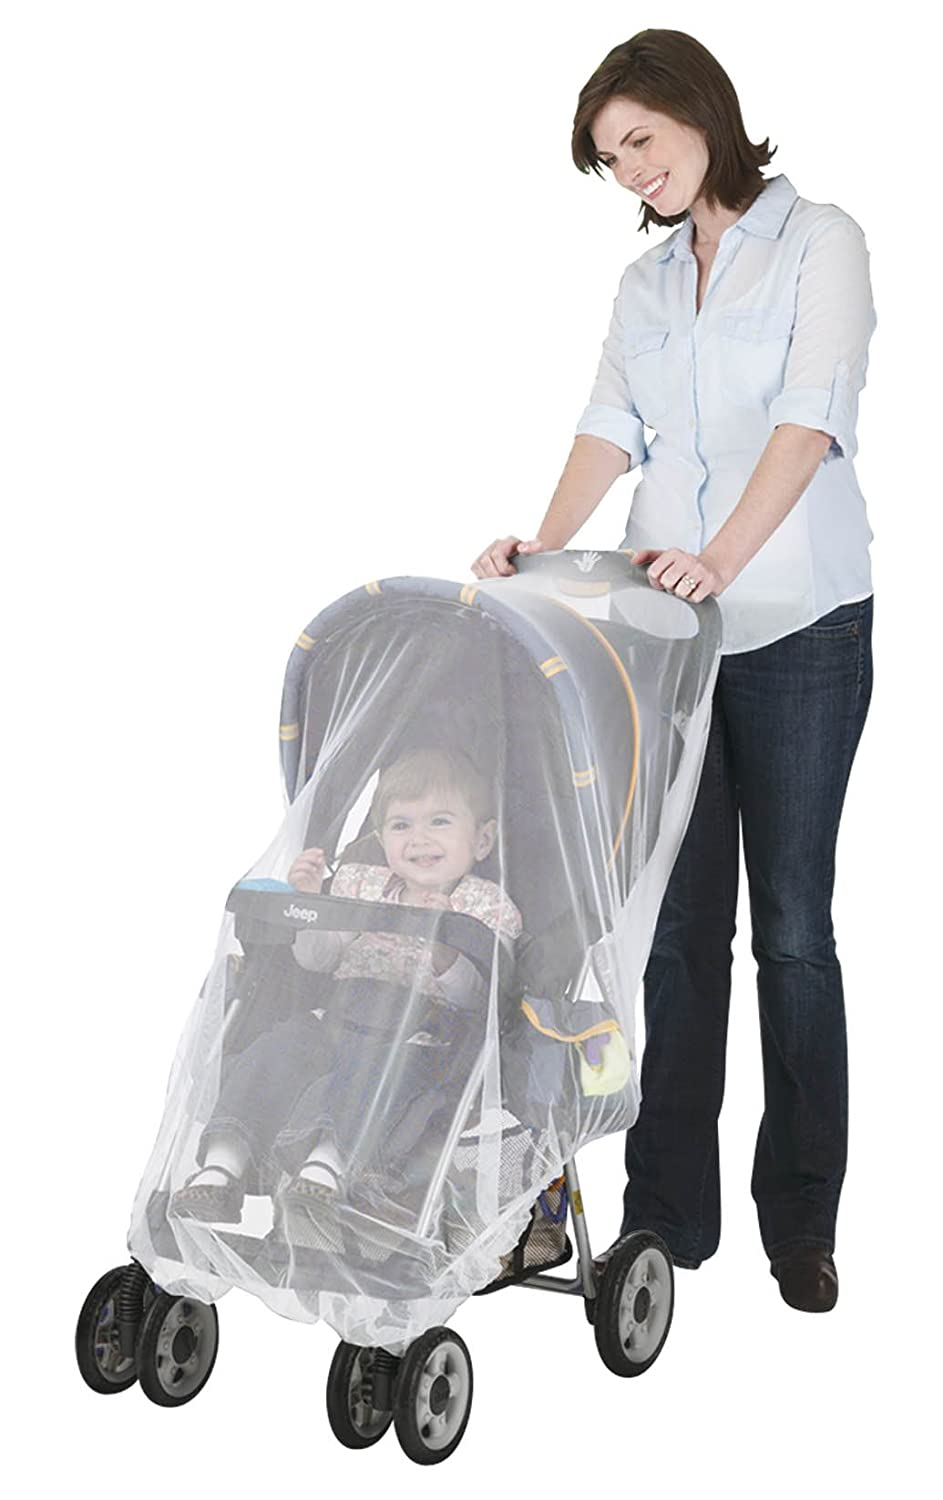 J is for Jeep Mosquito Net for Strollers, Mosquito Net for Car Seat and Infant Carrier, Universal Size, Bug Cover, Weather Protection, White HIS Juveniles 90105R